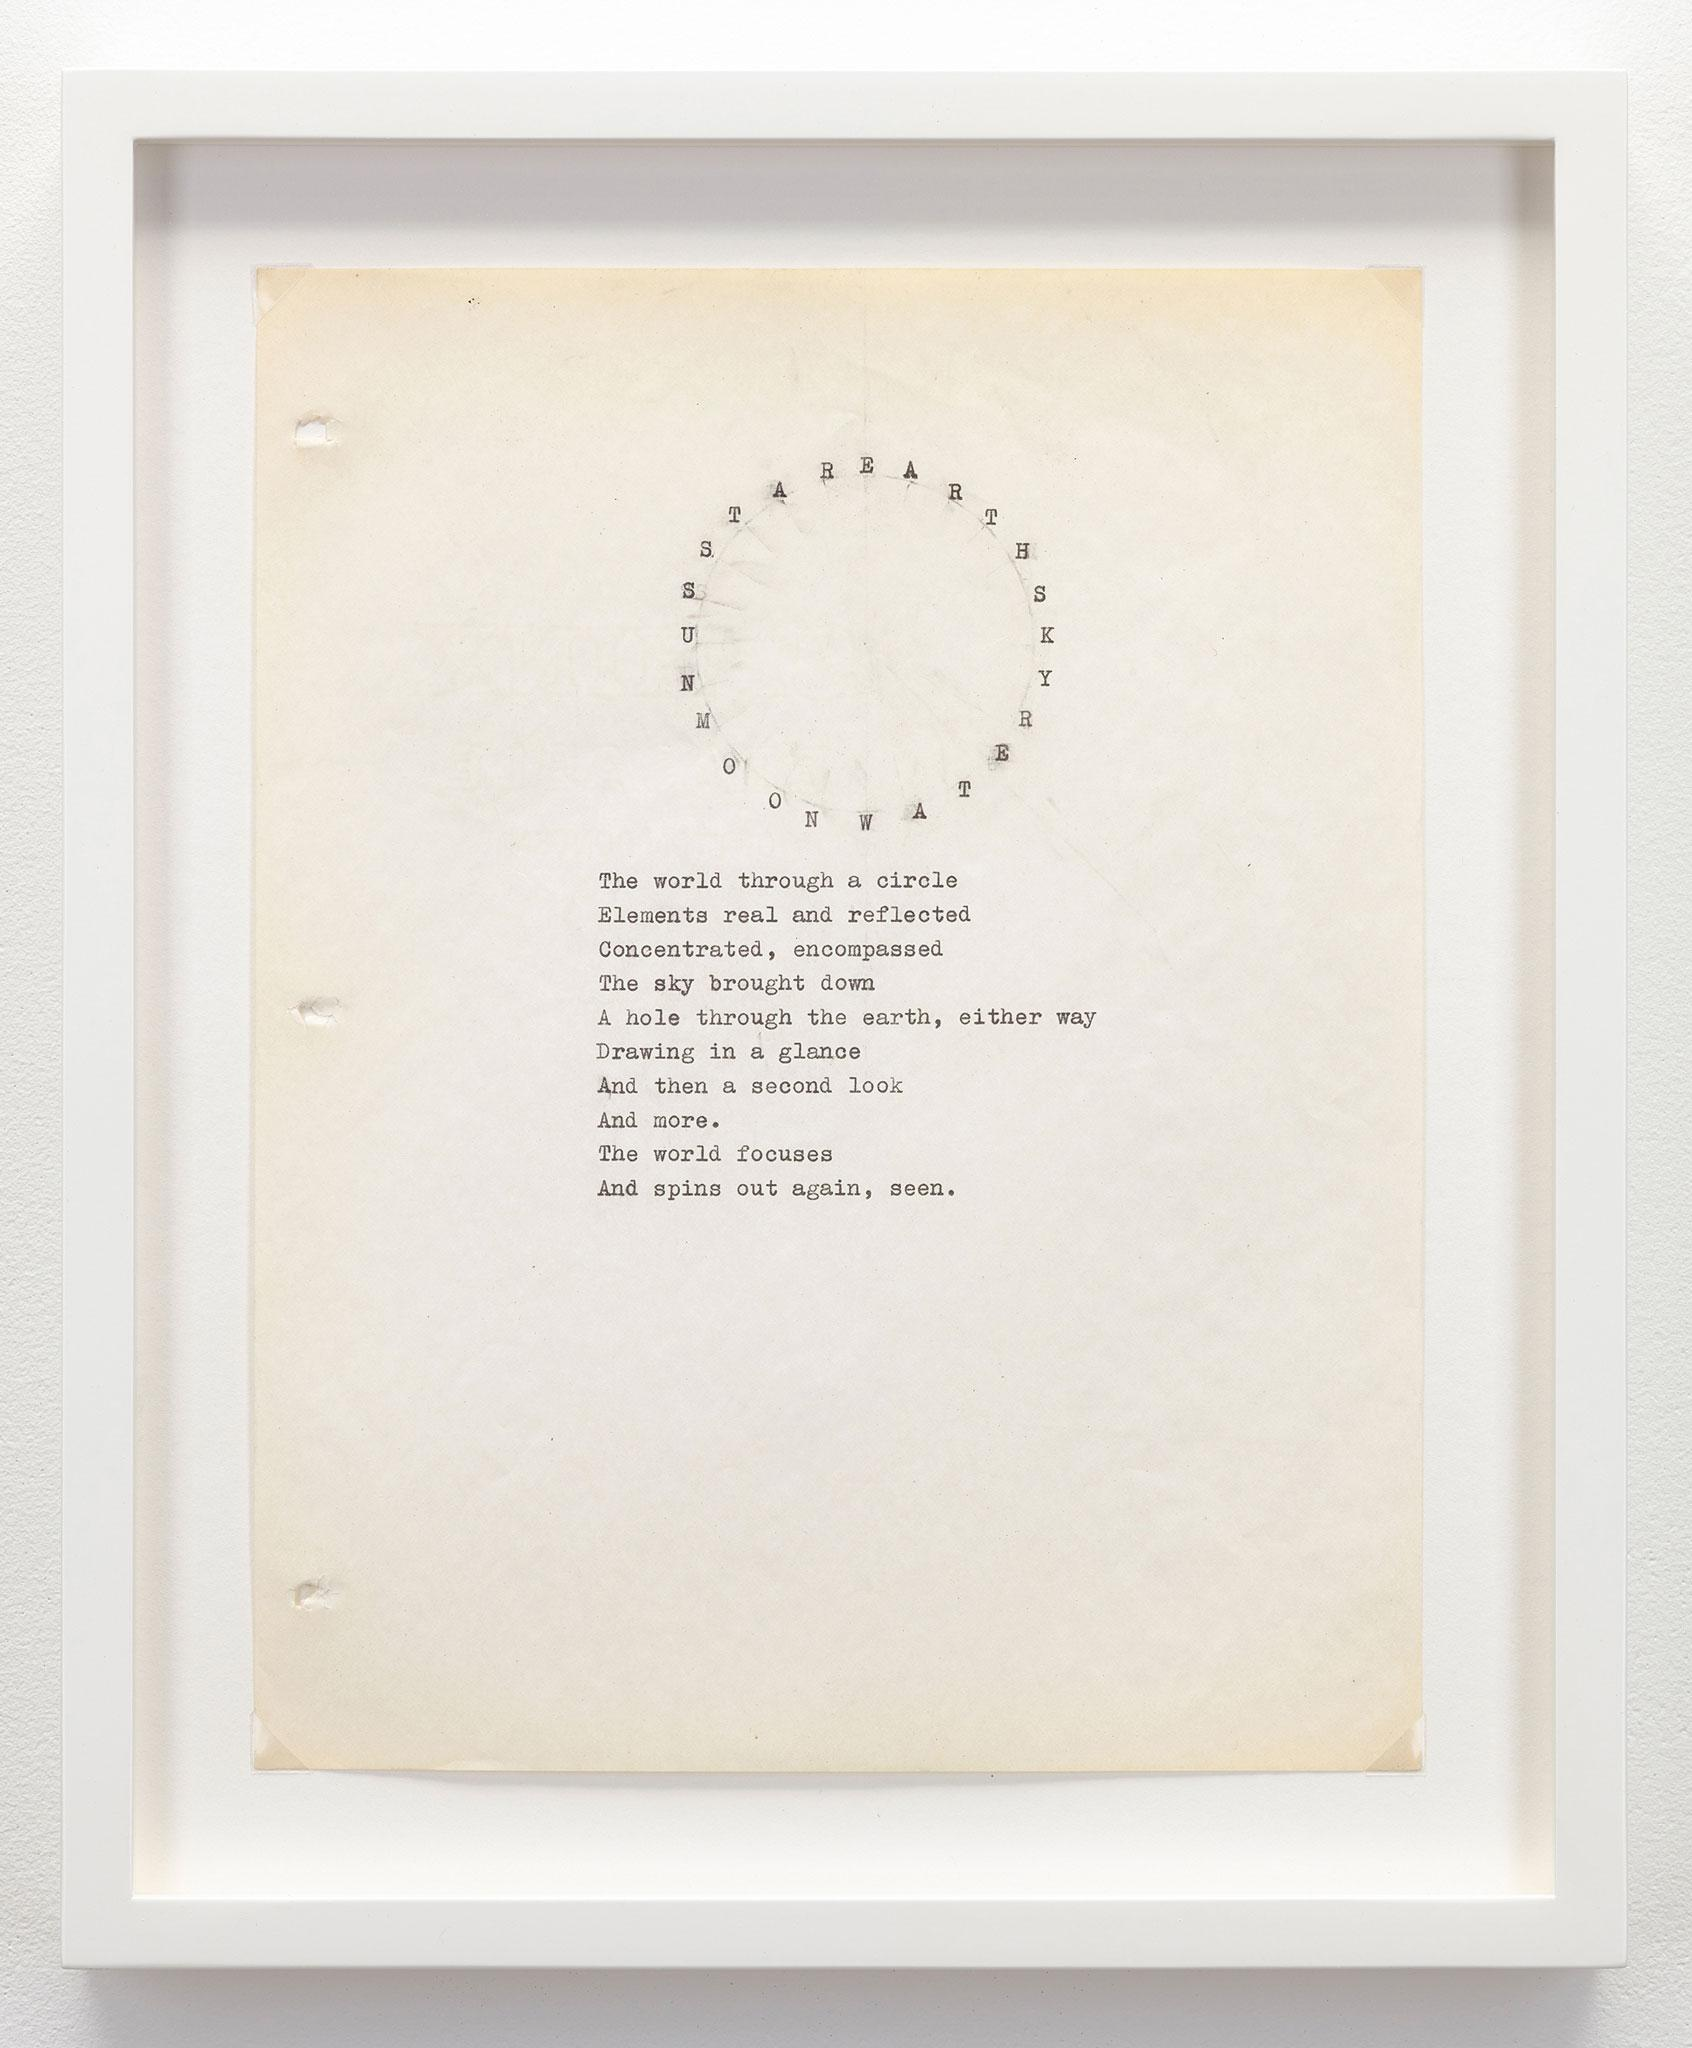 framed typewritten paper with words in a circle shape above a paragraph poem